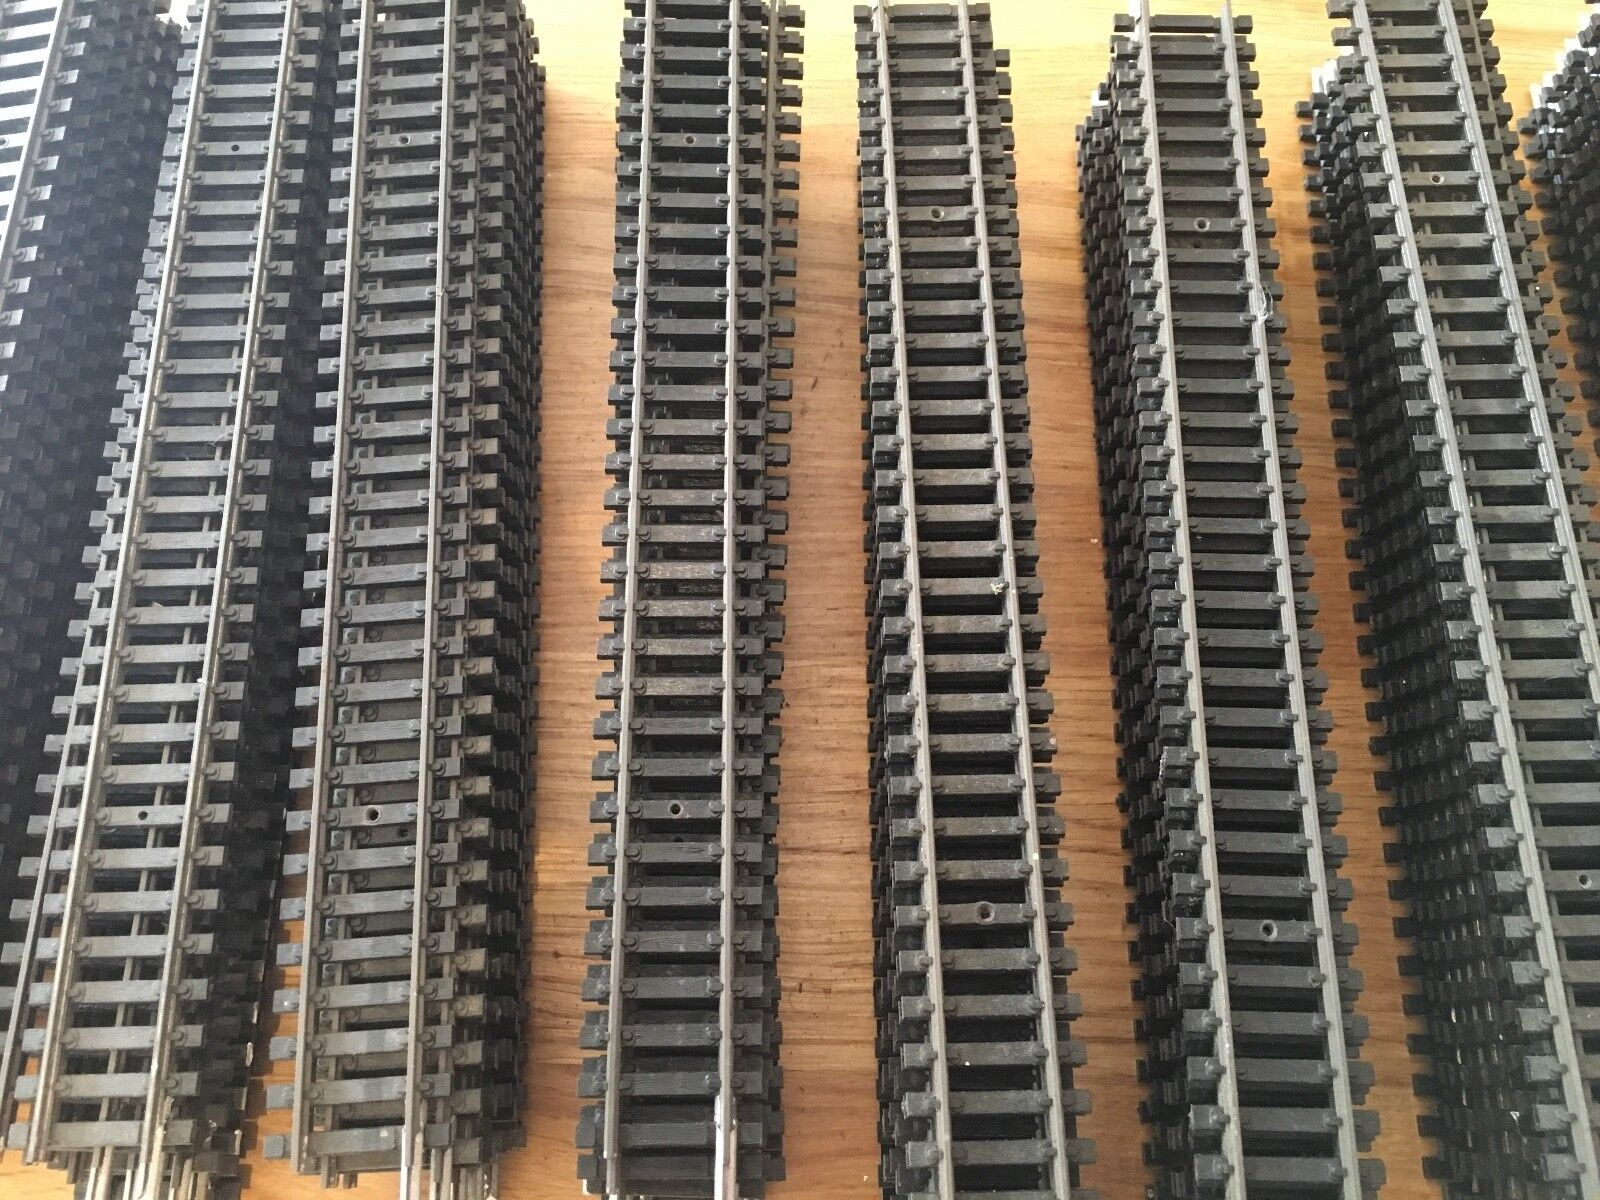 Jouef Train Track 00 HO - 127 Assorted Pieces - Exc Condition